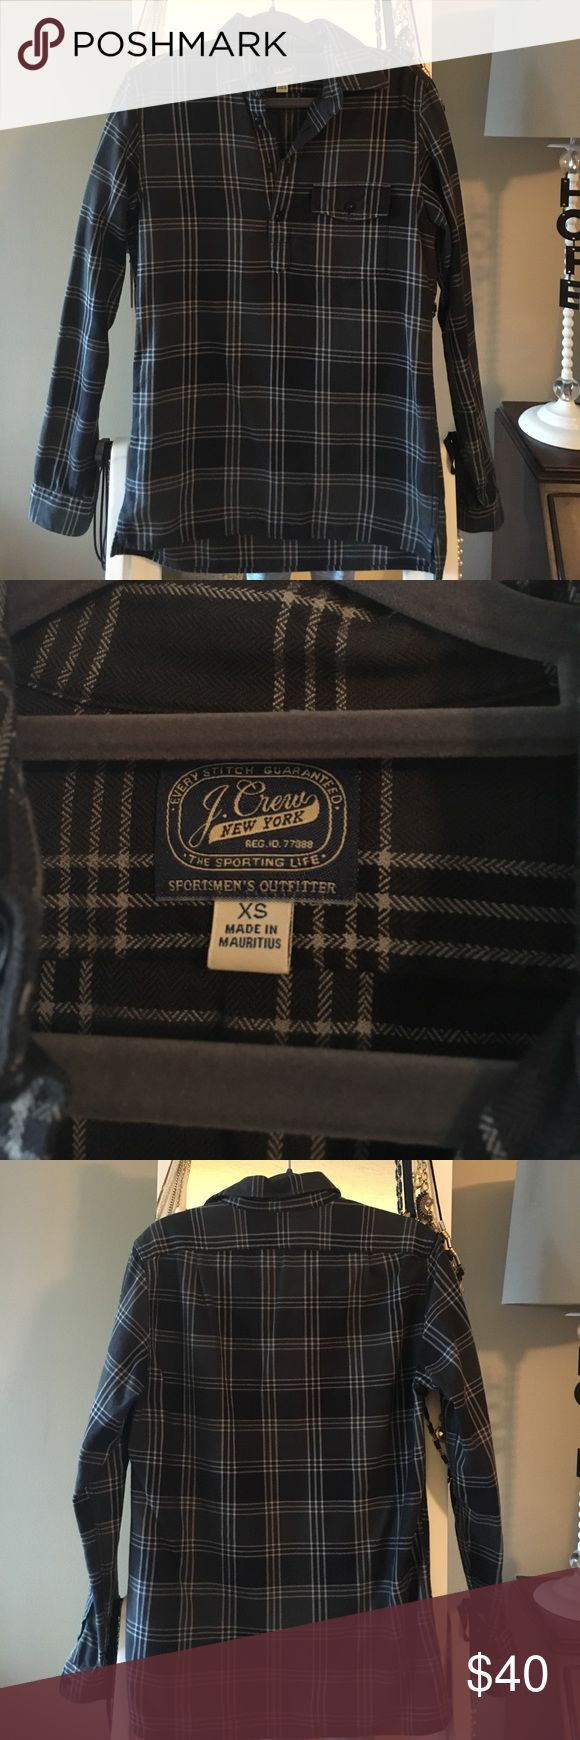 J Crew Men's XS Flannel Like new condition! Only been worn a couple times. Looks really cute on girls too with leggings or jeans! J. Crew Tops Button Down Shirts